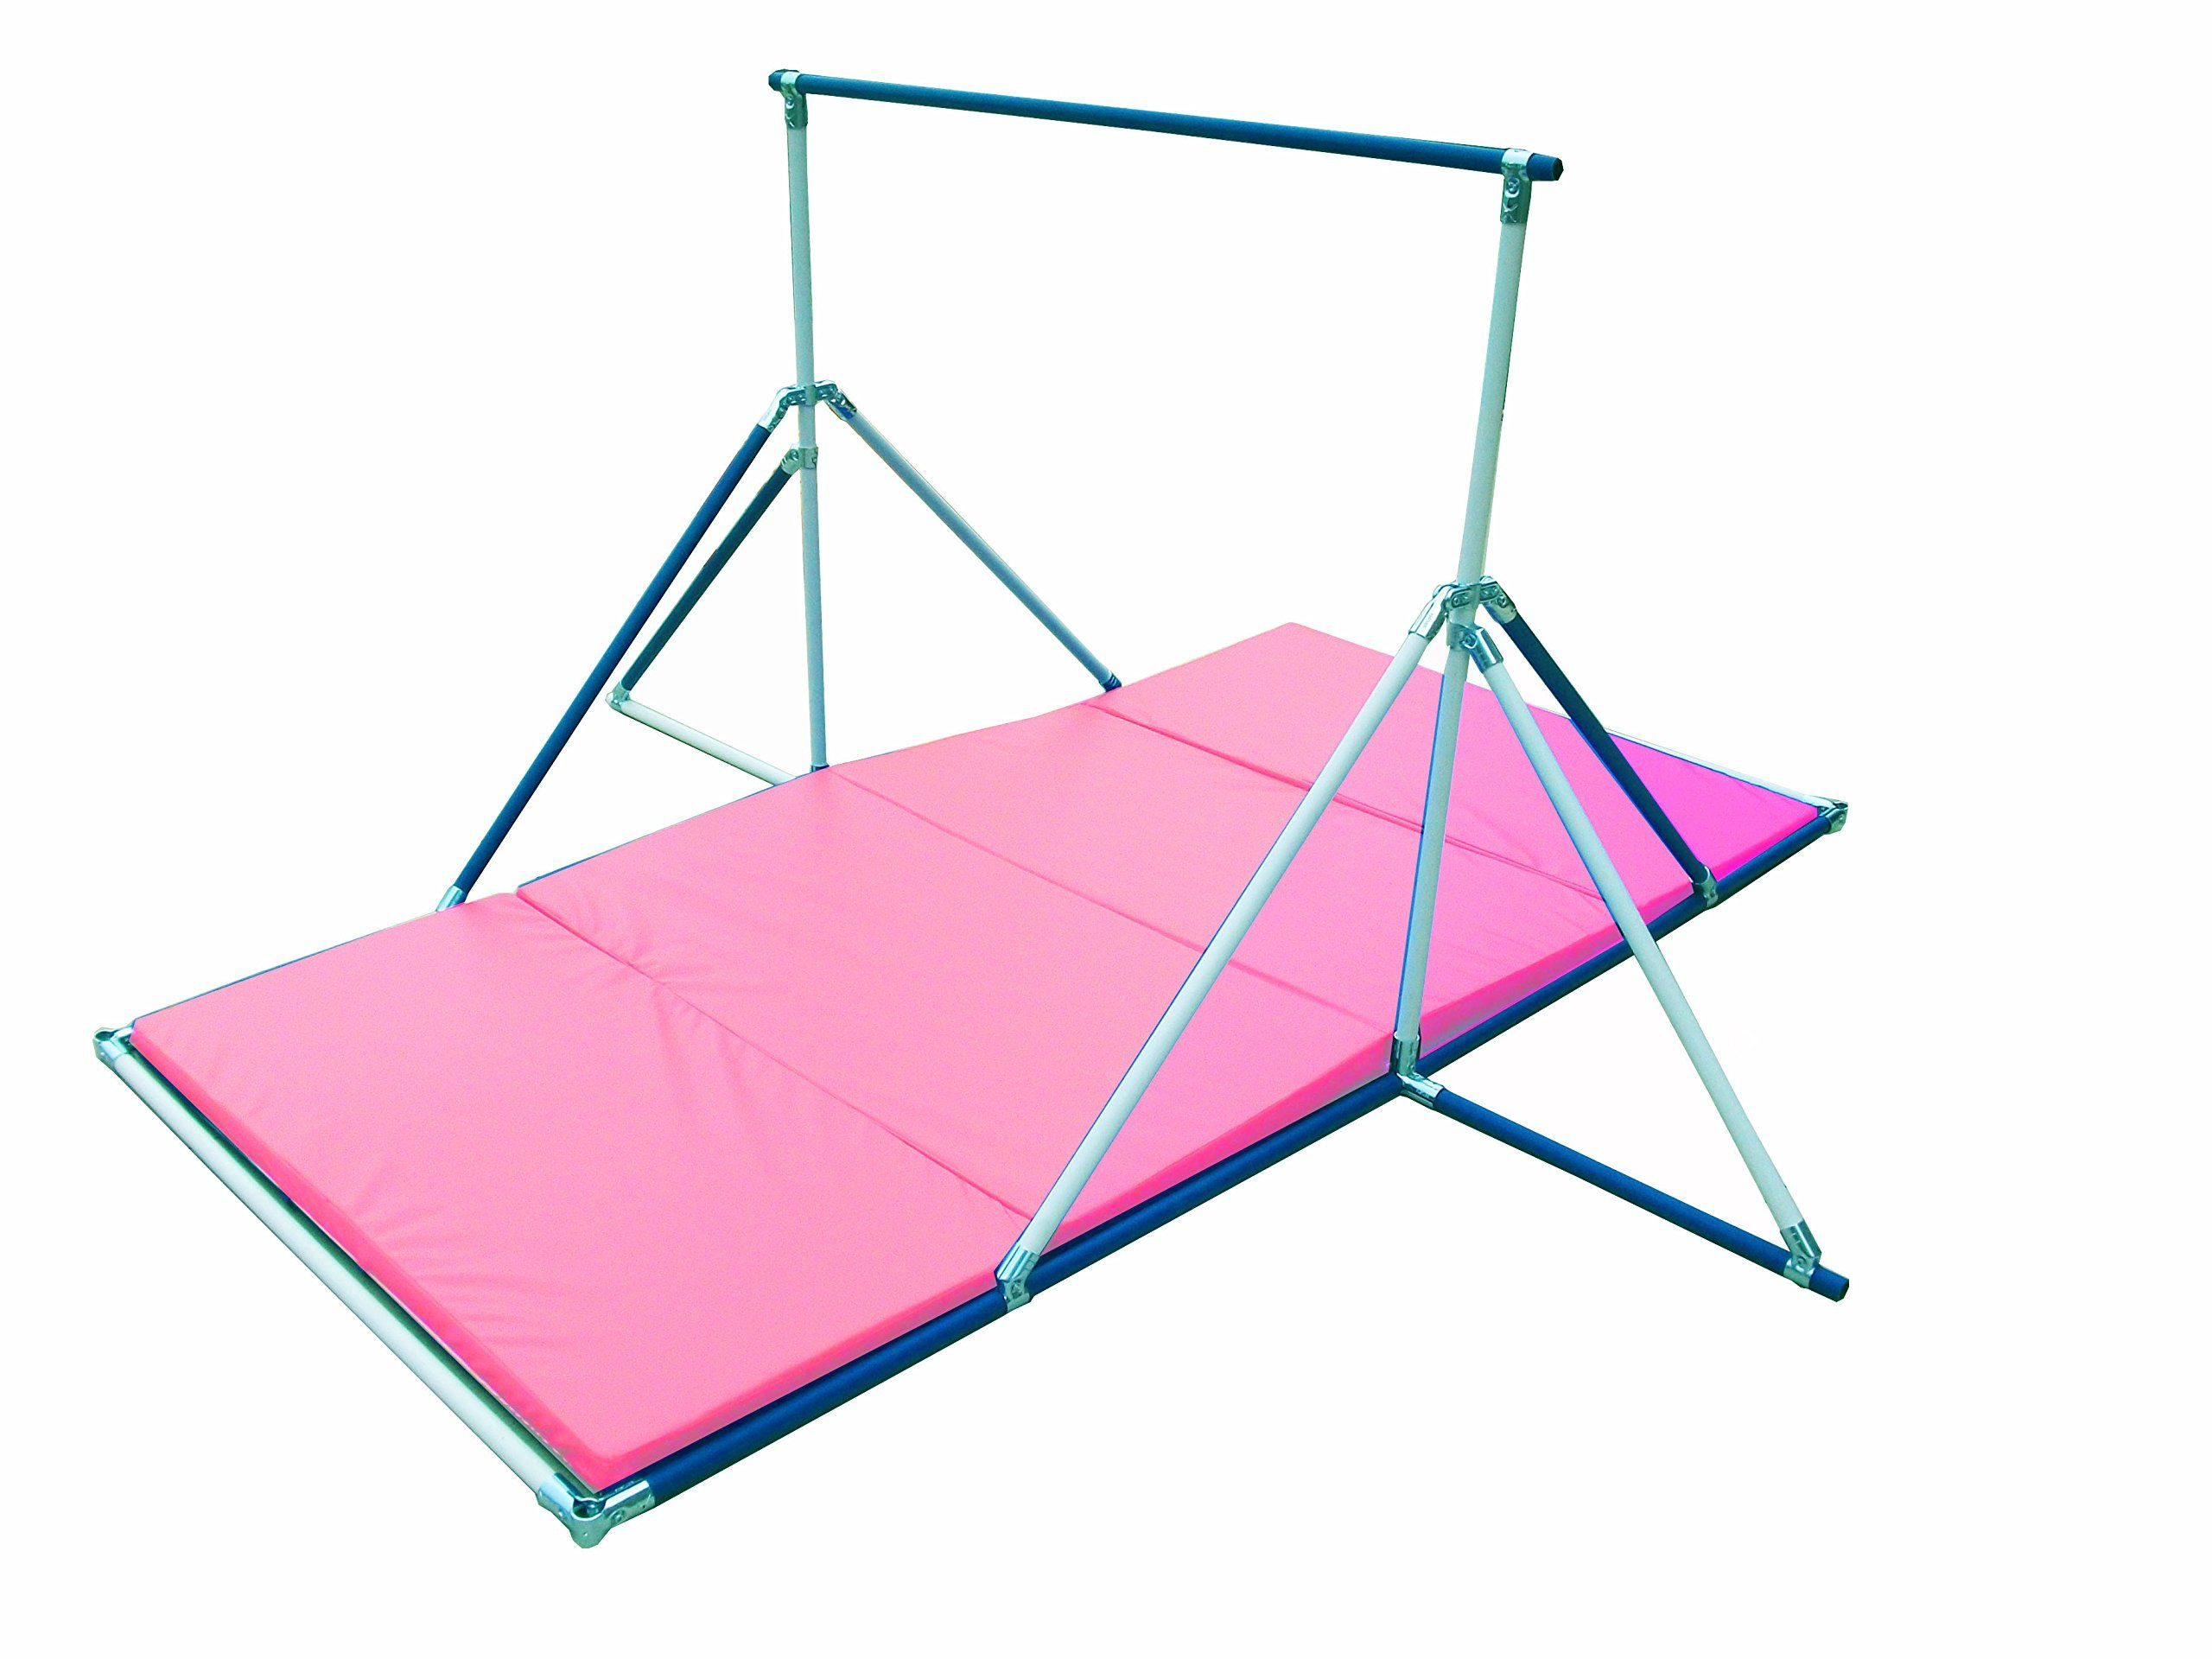 incline shape shipping toys ramp mat overstock free folding slope skill product today gymnastics x tumbling cheese mats sports cheap large foam wedge